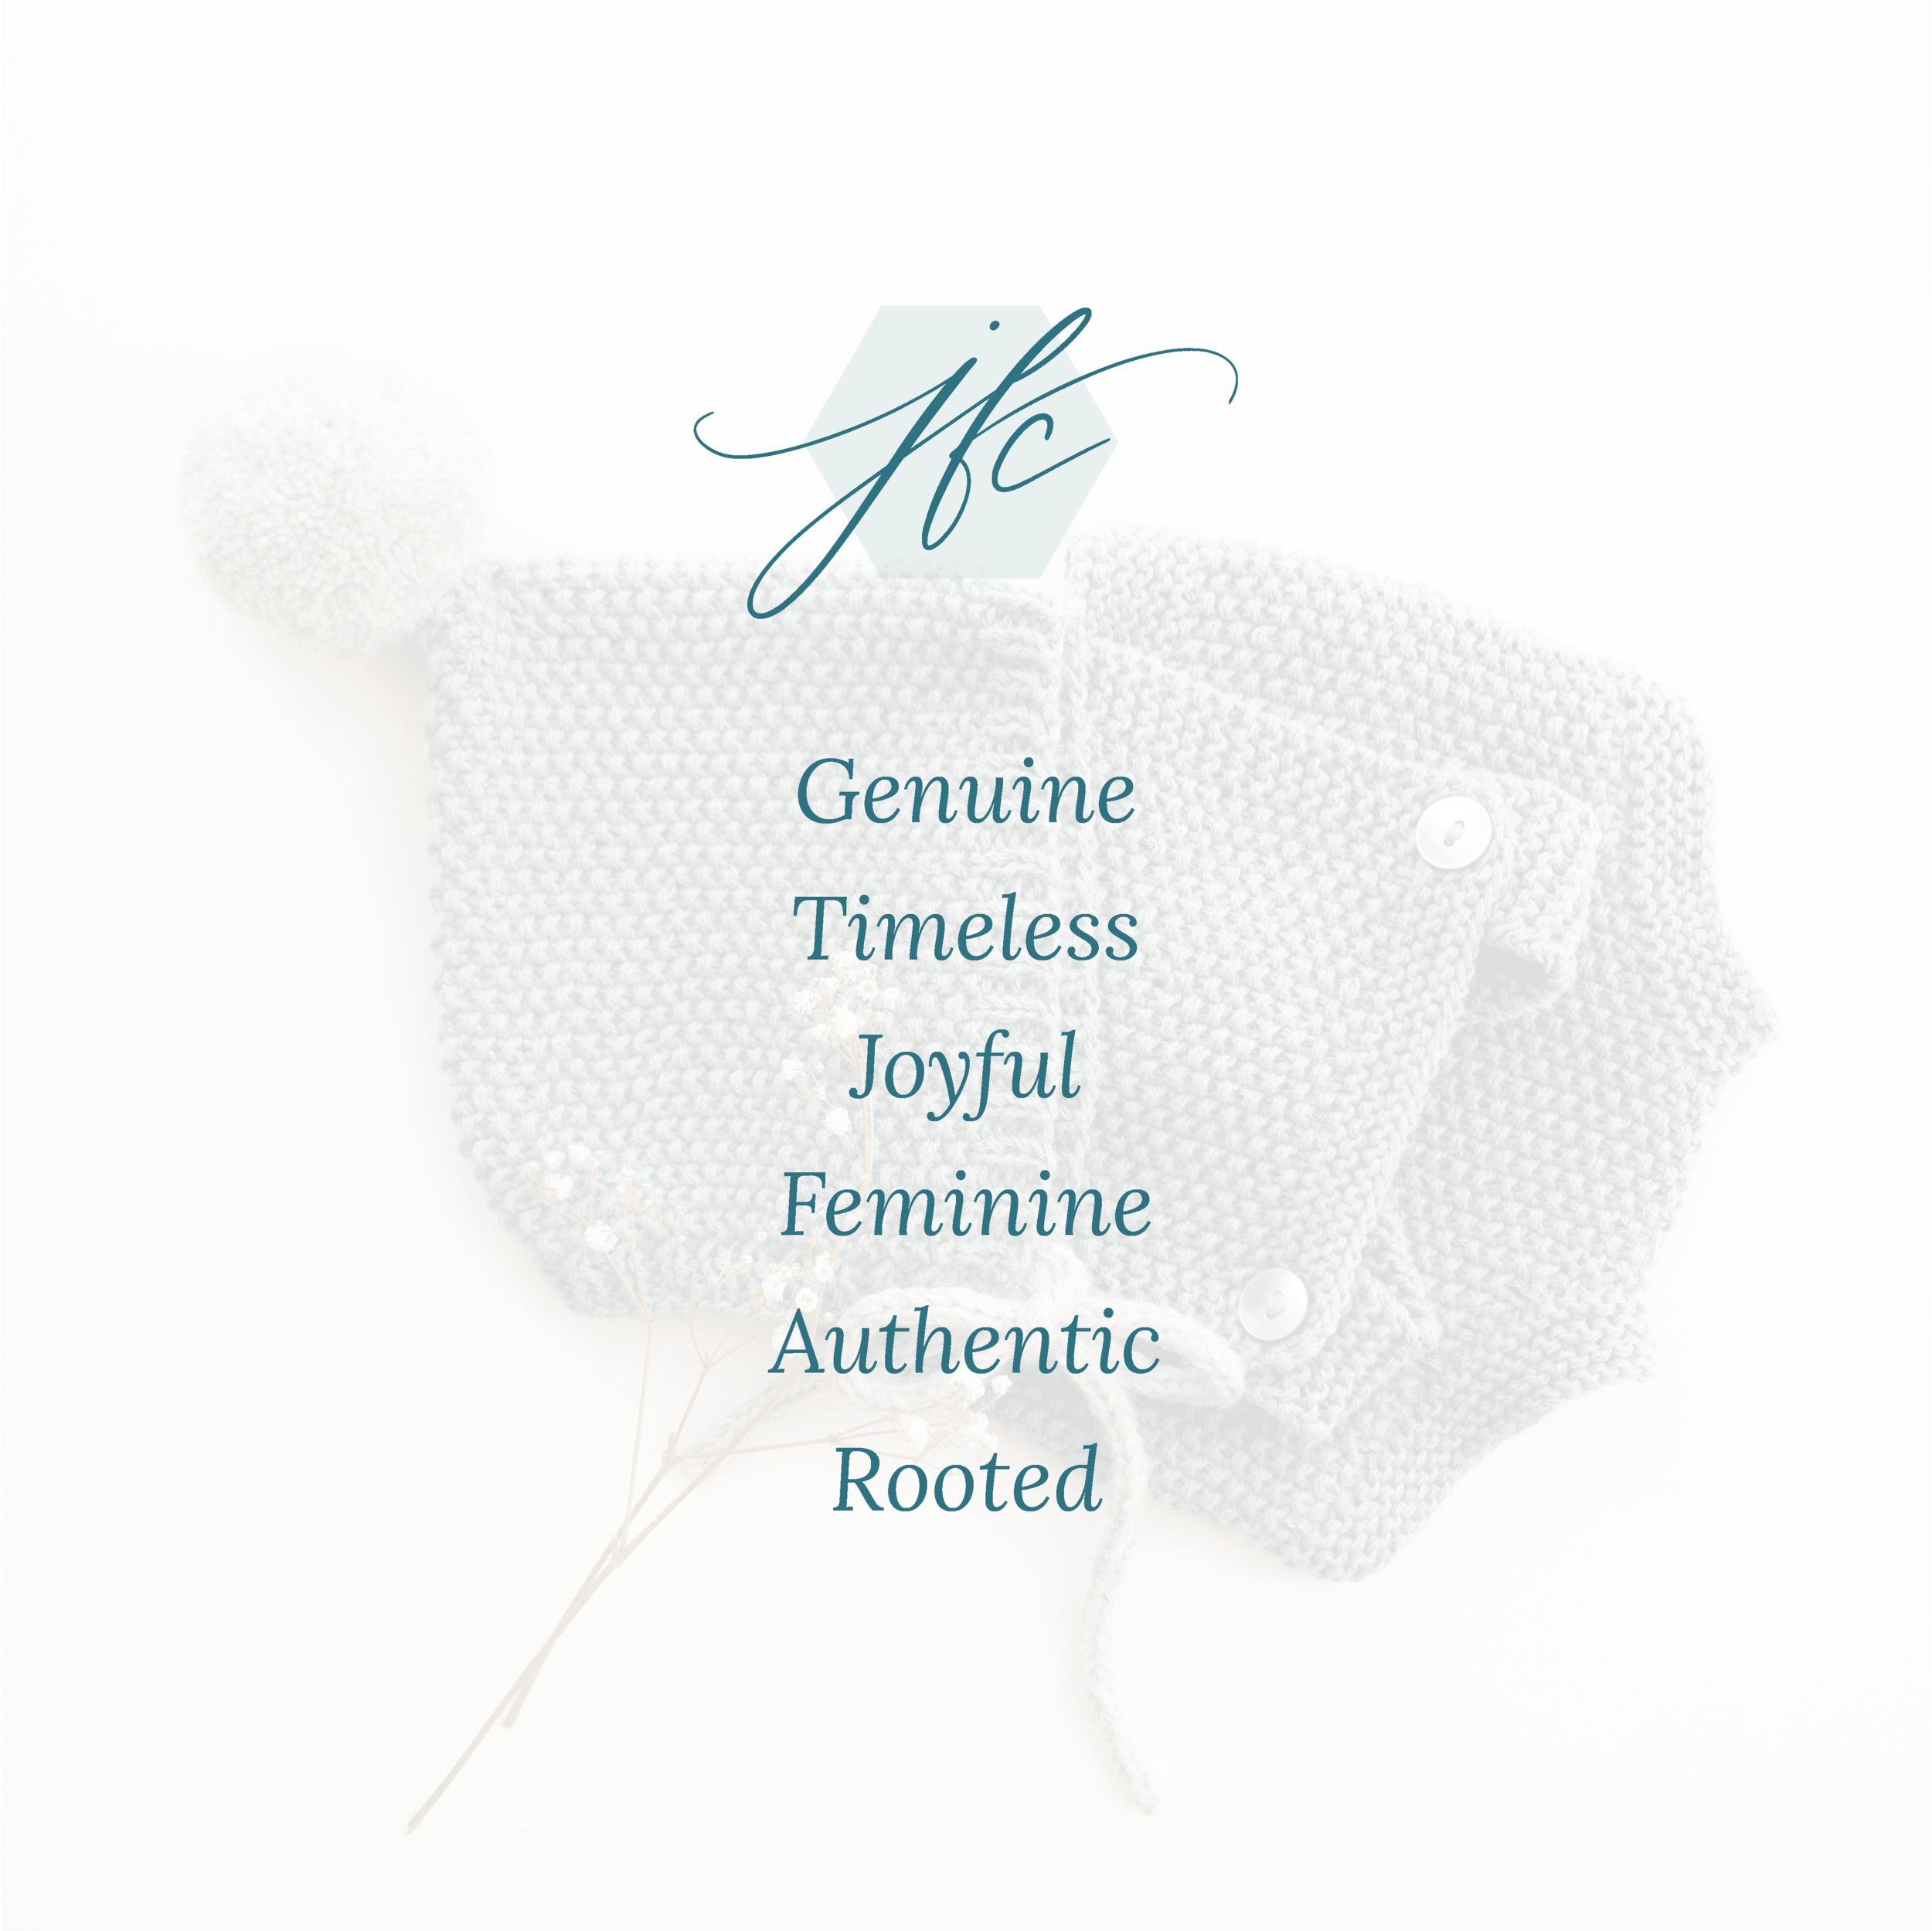 Jamie Fisher Collective Fairfield Pennsylvania Wedding Family Newborn Photographer Brand and Logo Design by Kindly by Kelsea